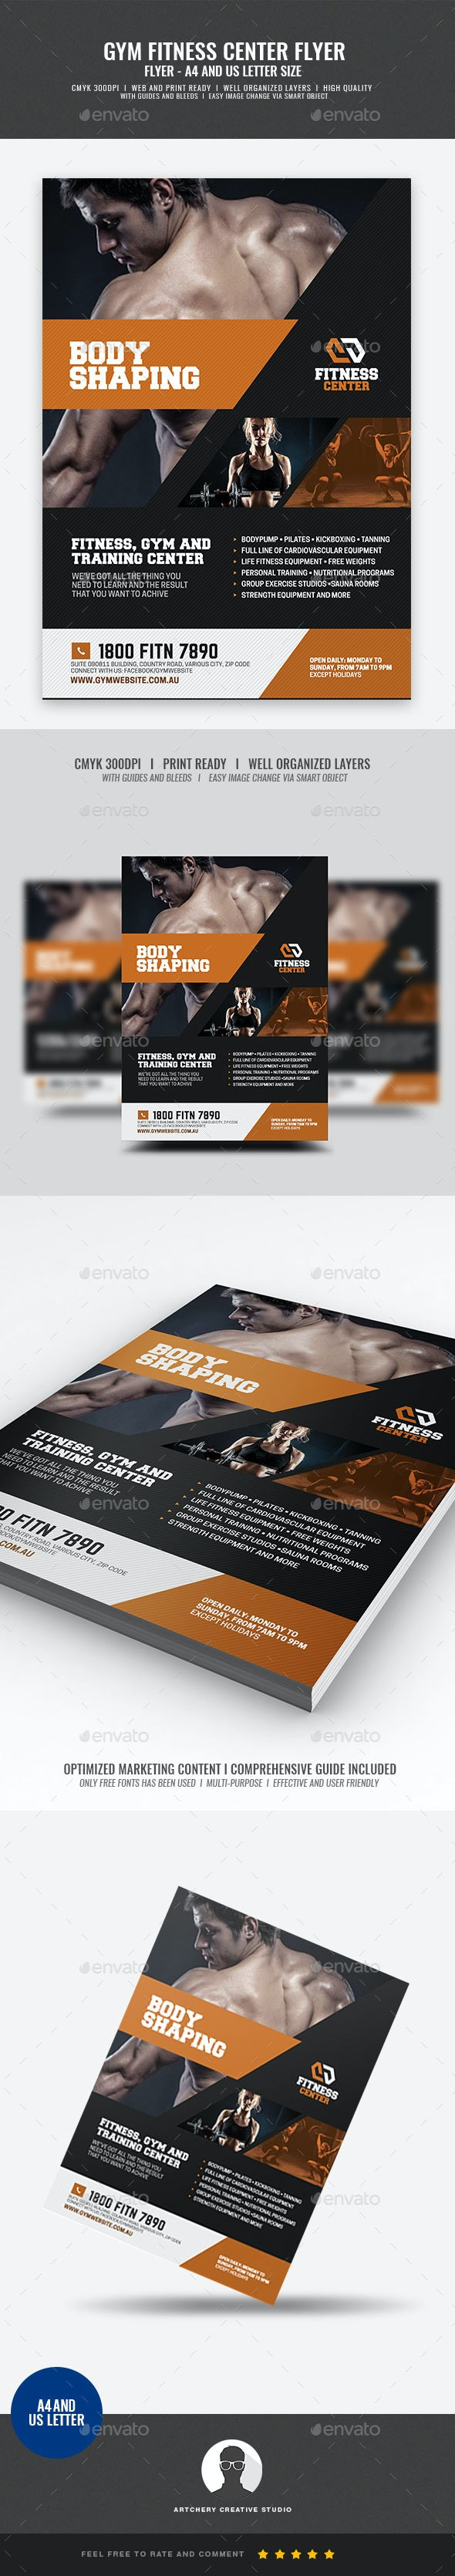 Gym Company Promotional Flyer - Corporate Flyers